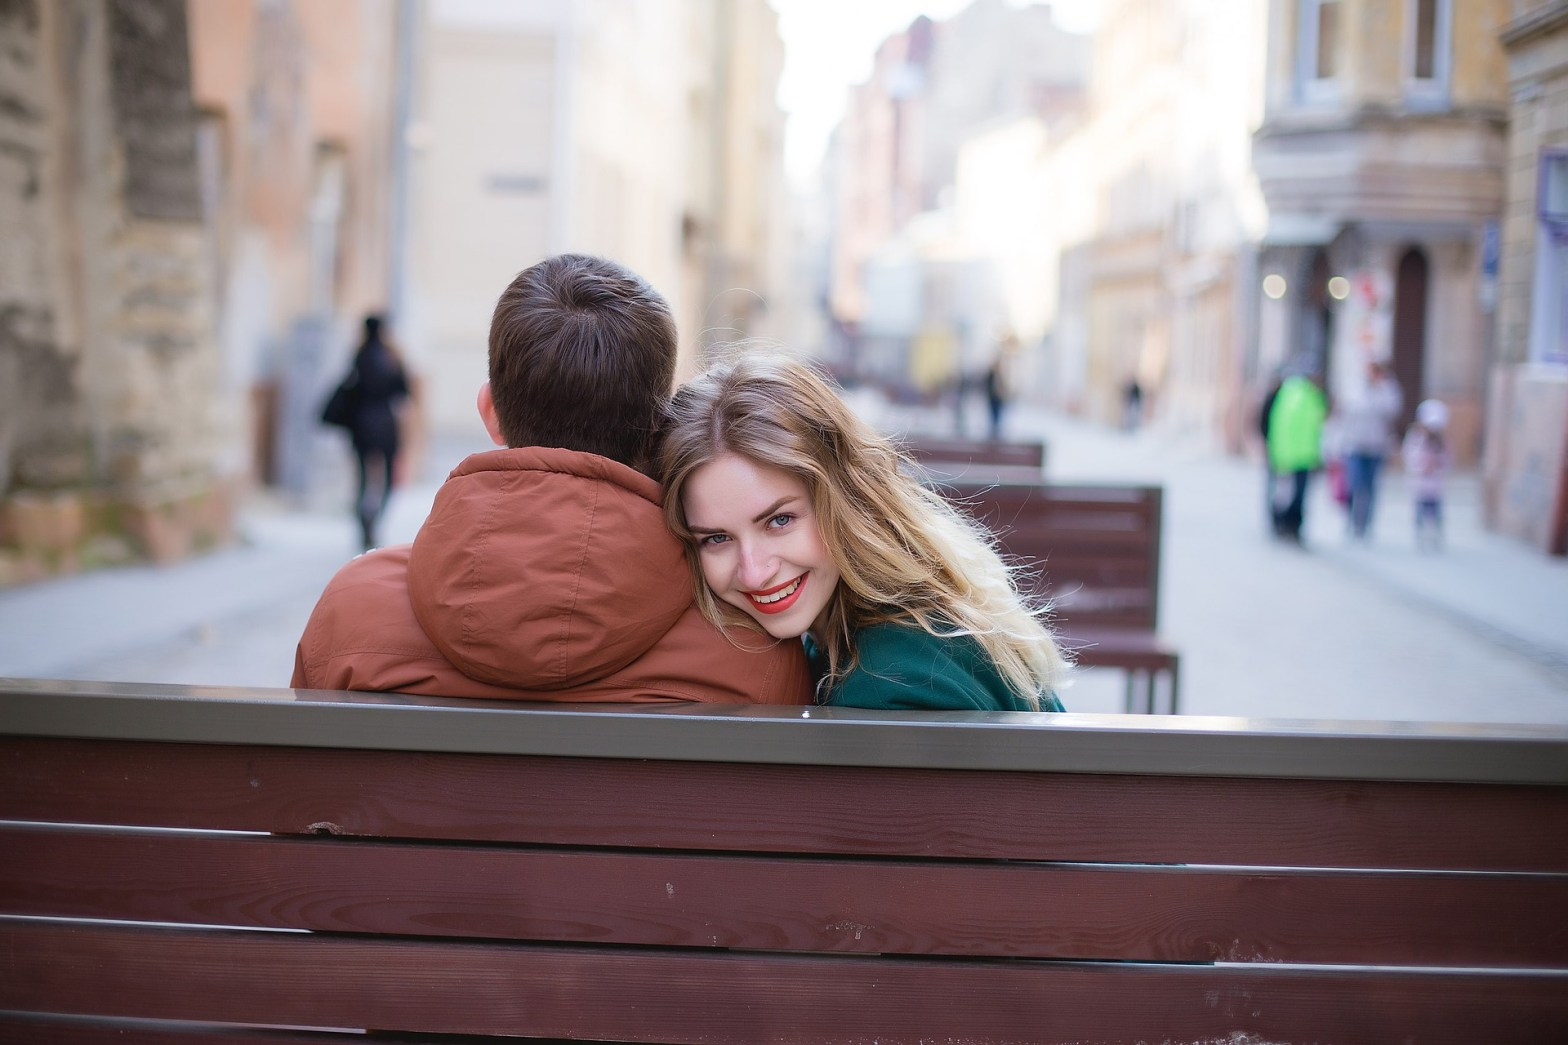 Couple on a bench as an example of attachment